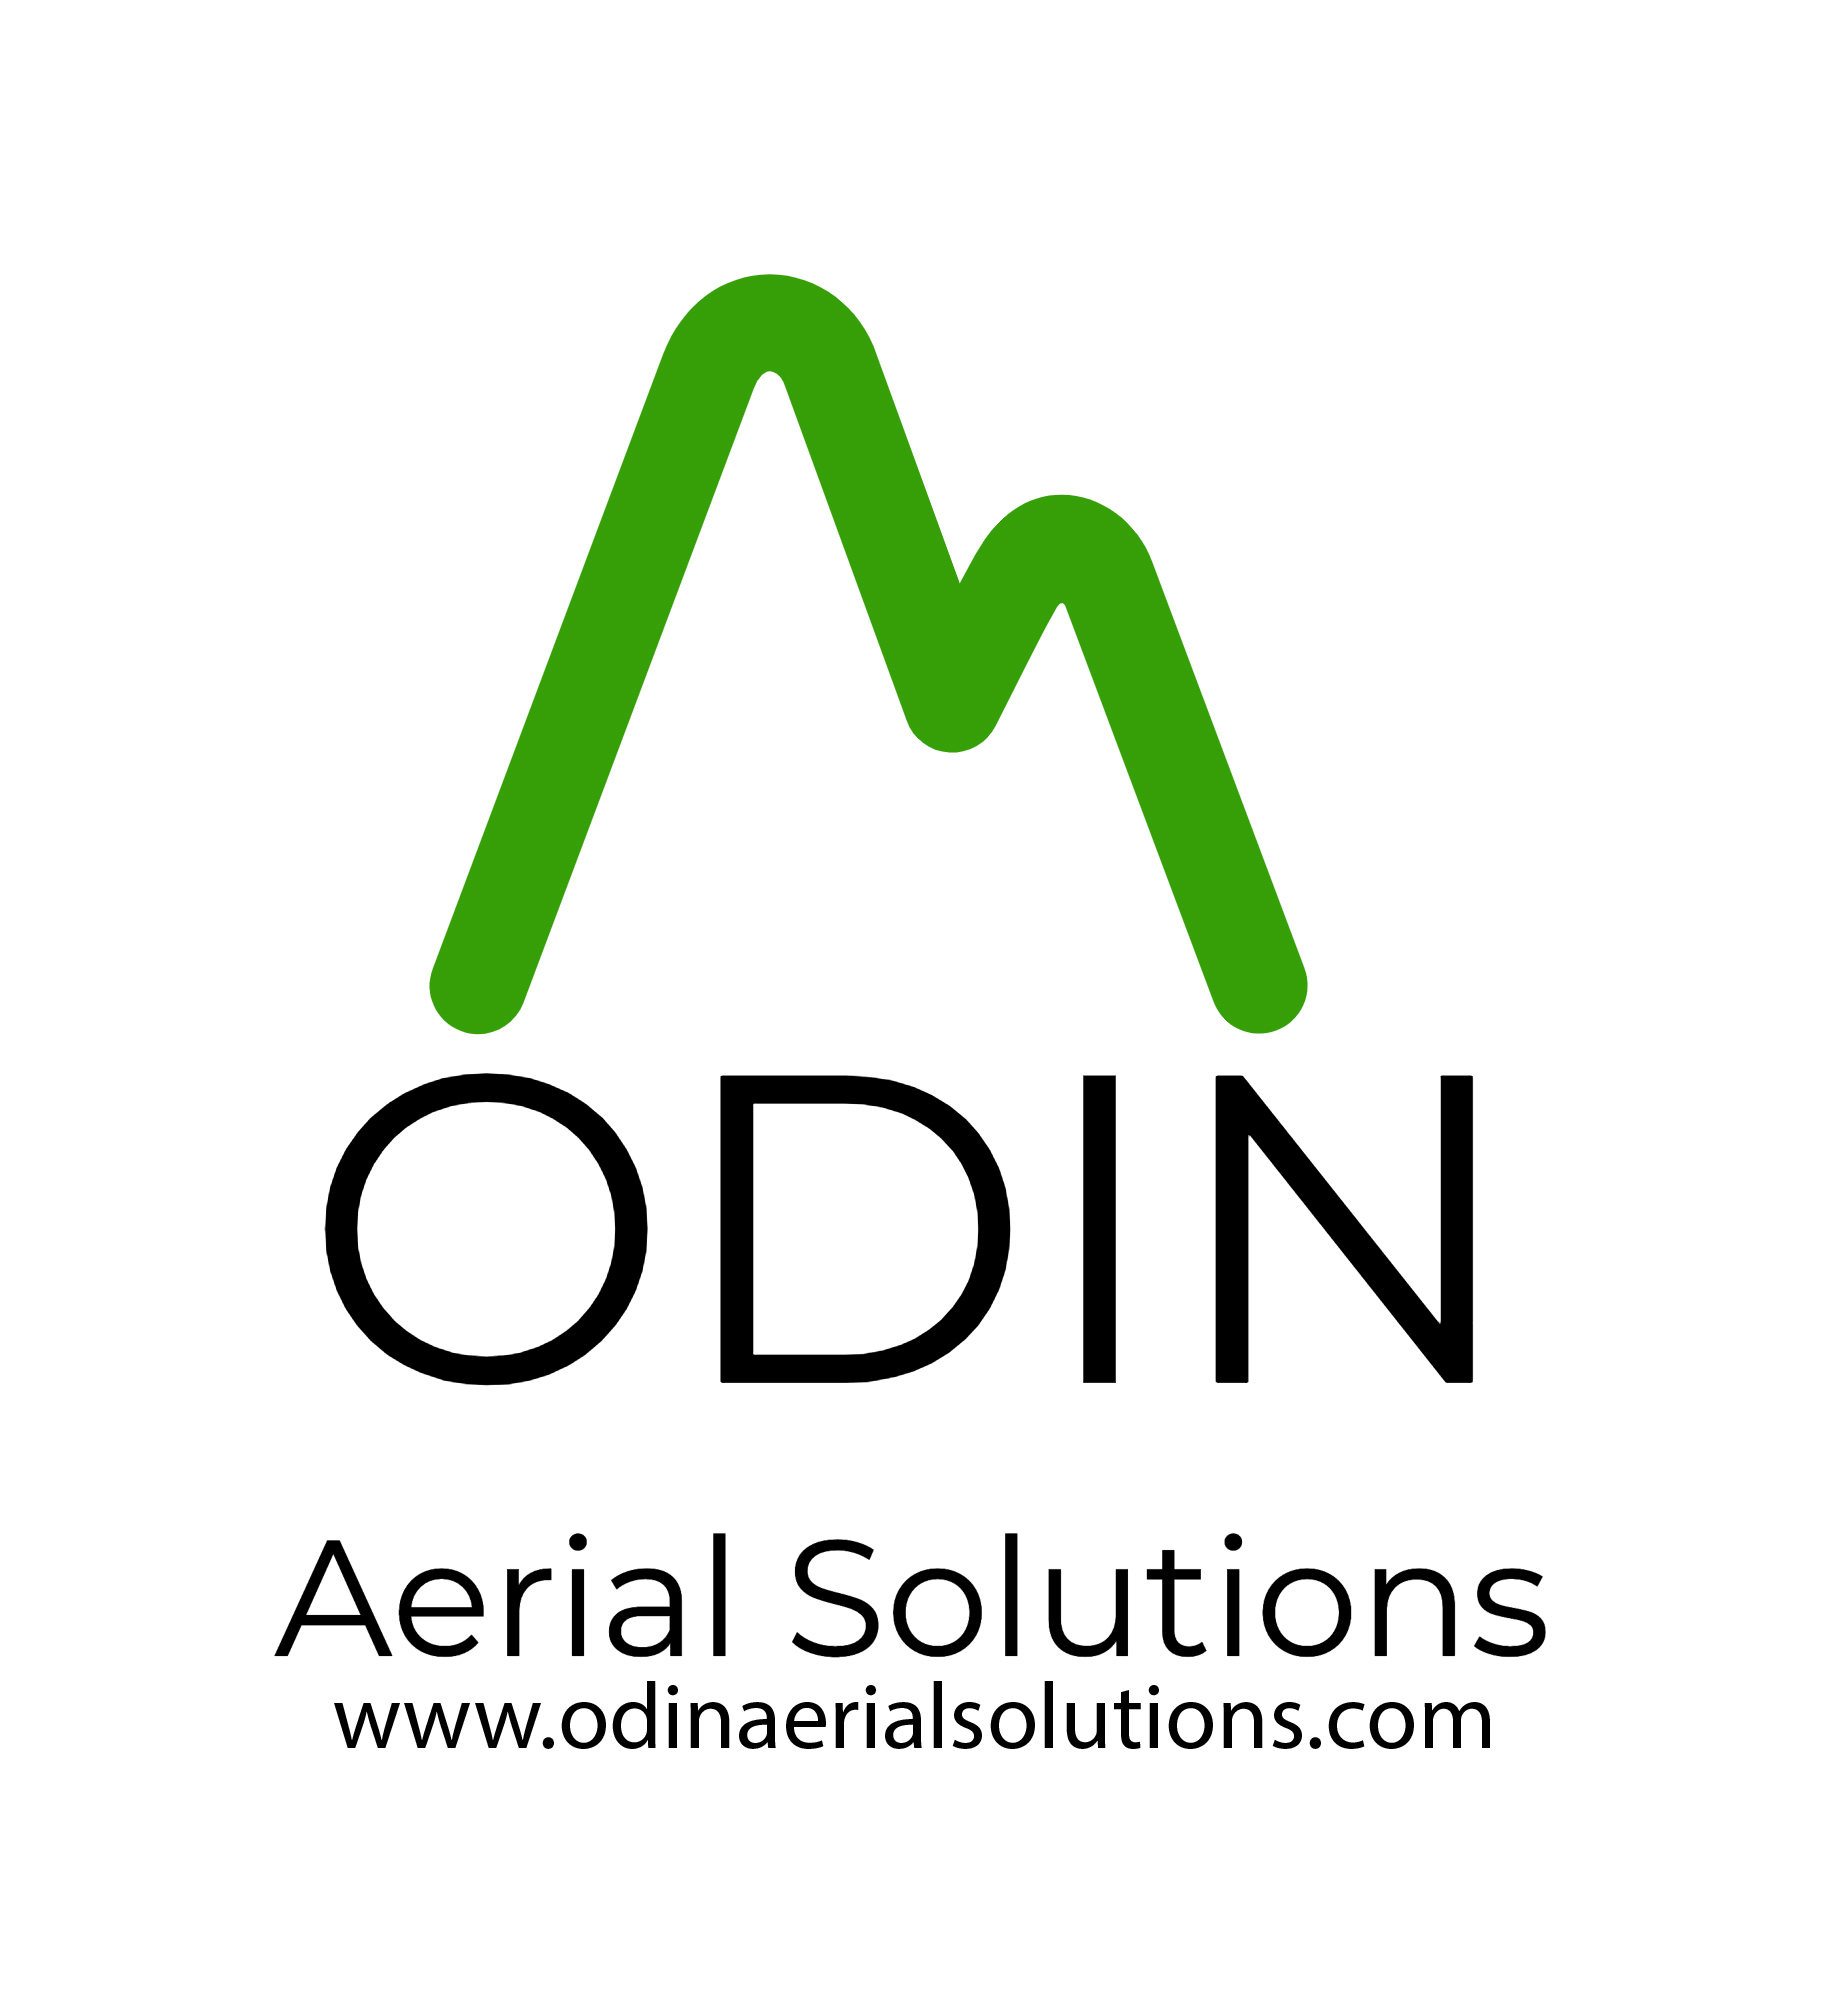 Odin Aerial solutions